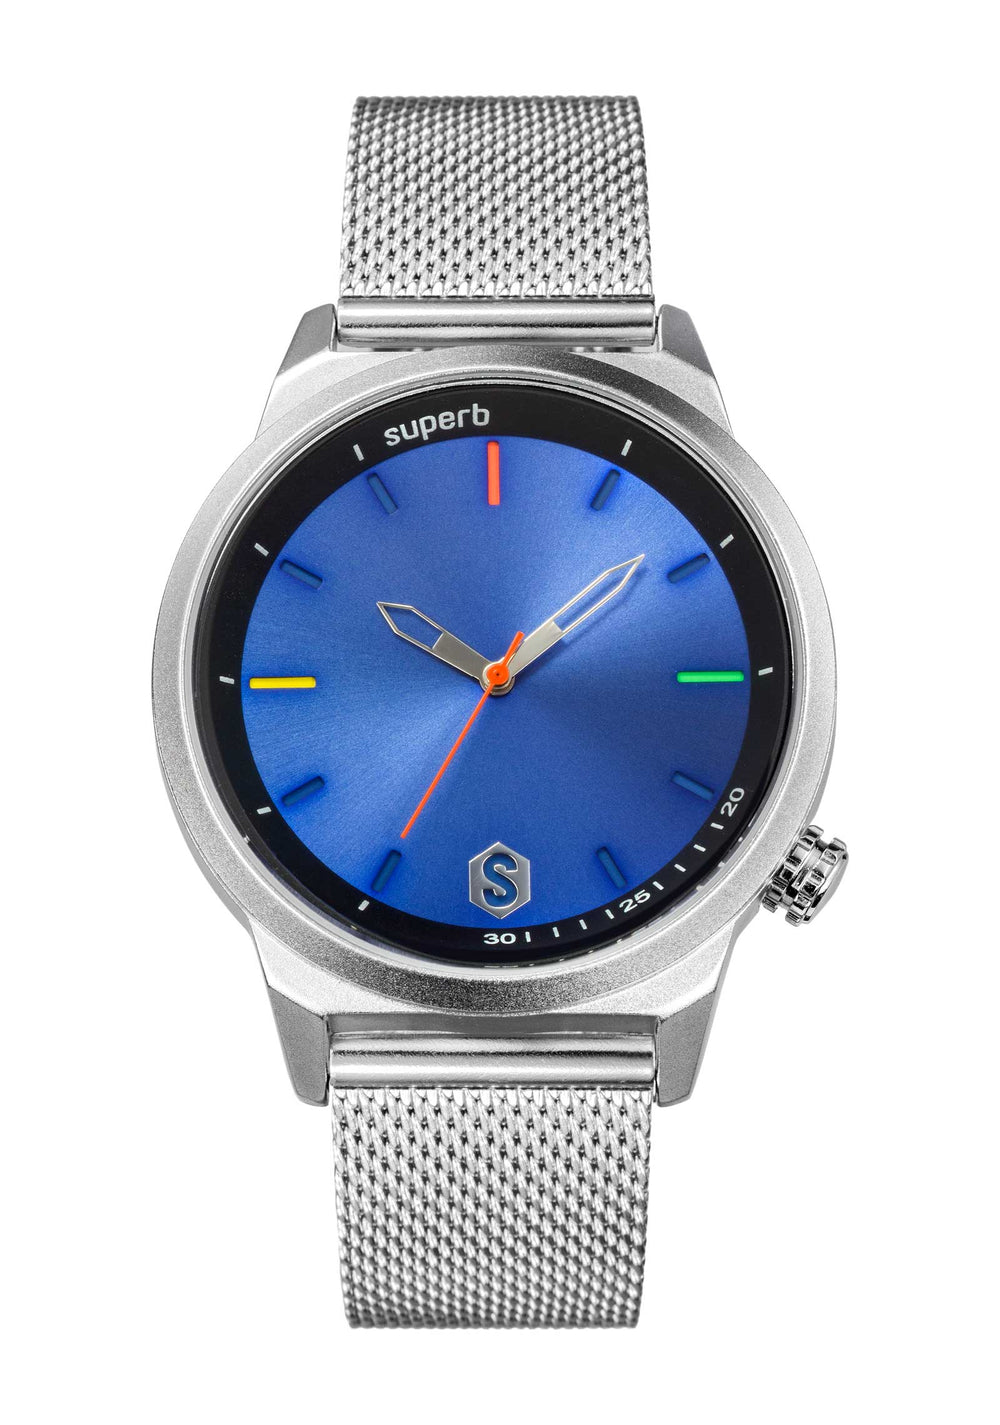 Reloj Superb Goa Spirit Steel Sea. Colección con un diseño elegante y con el sello Superb: ¡El color!.